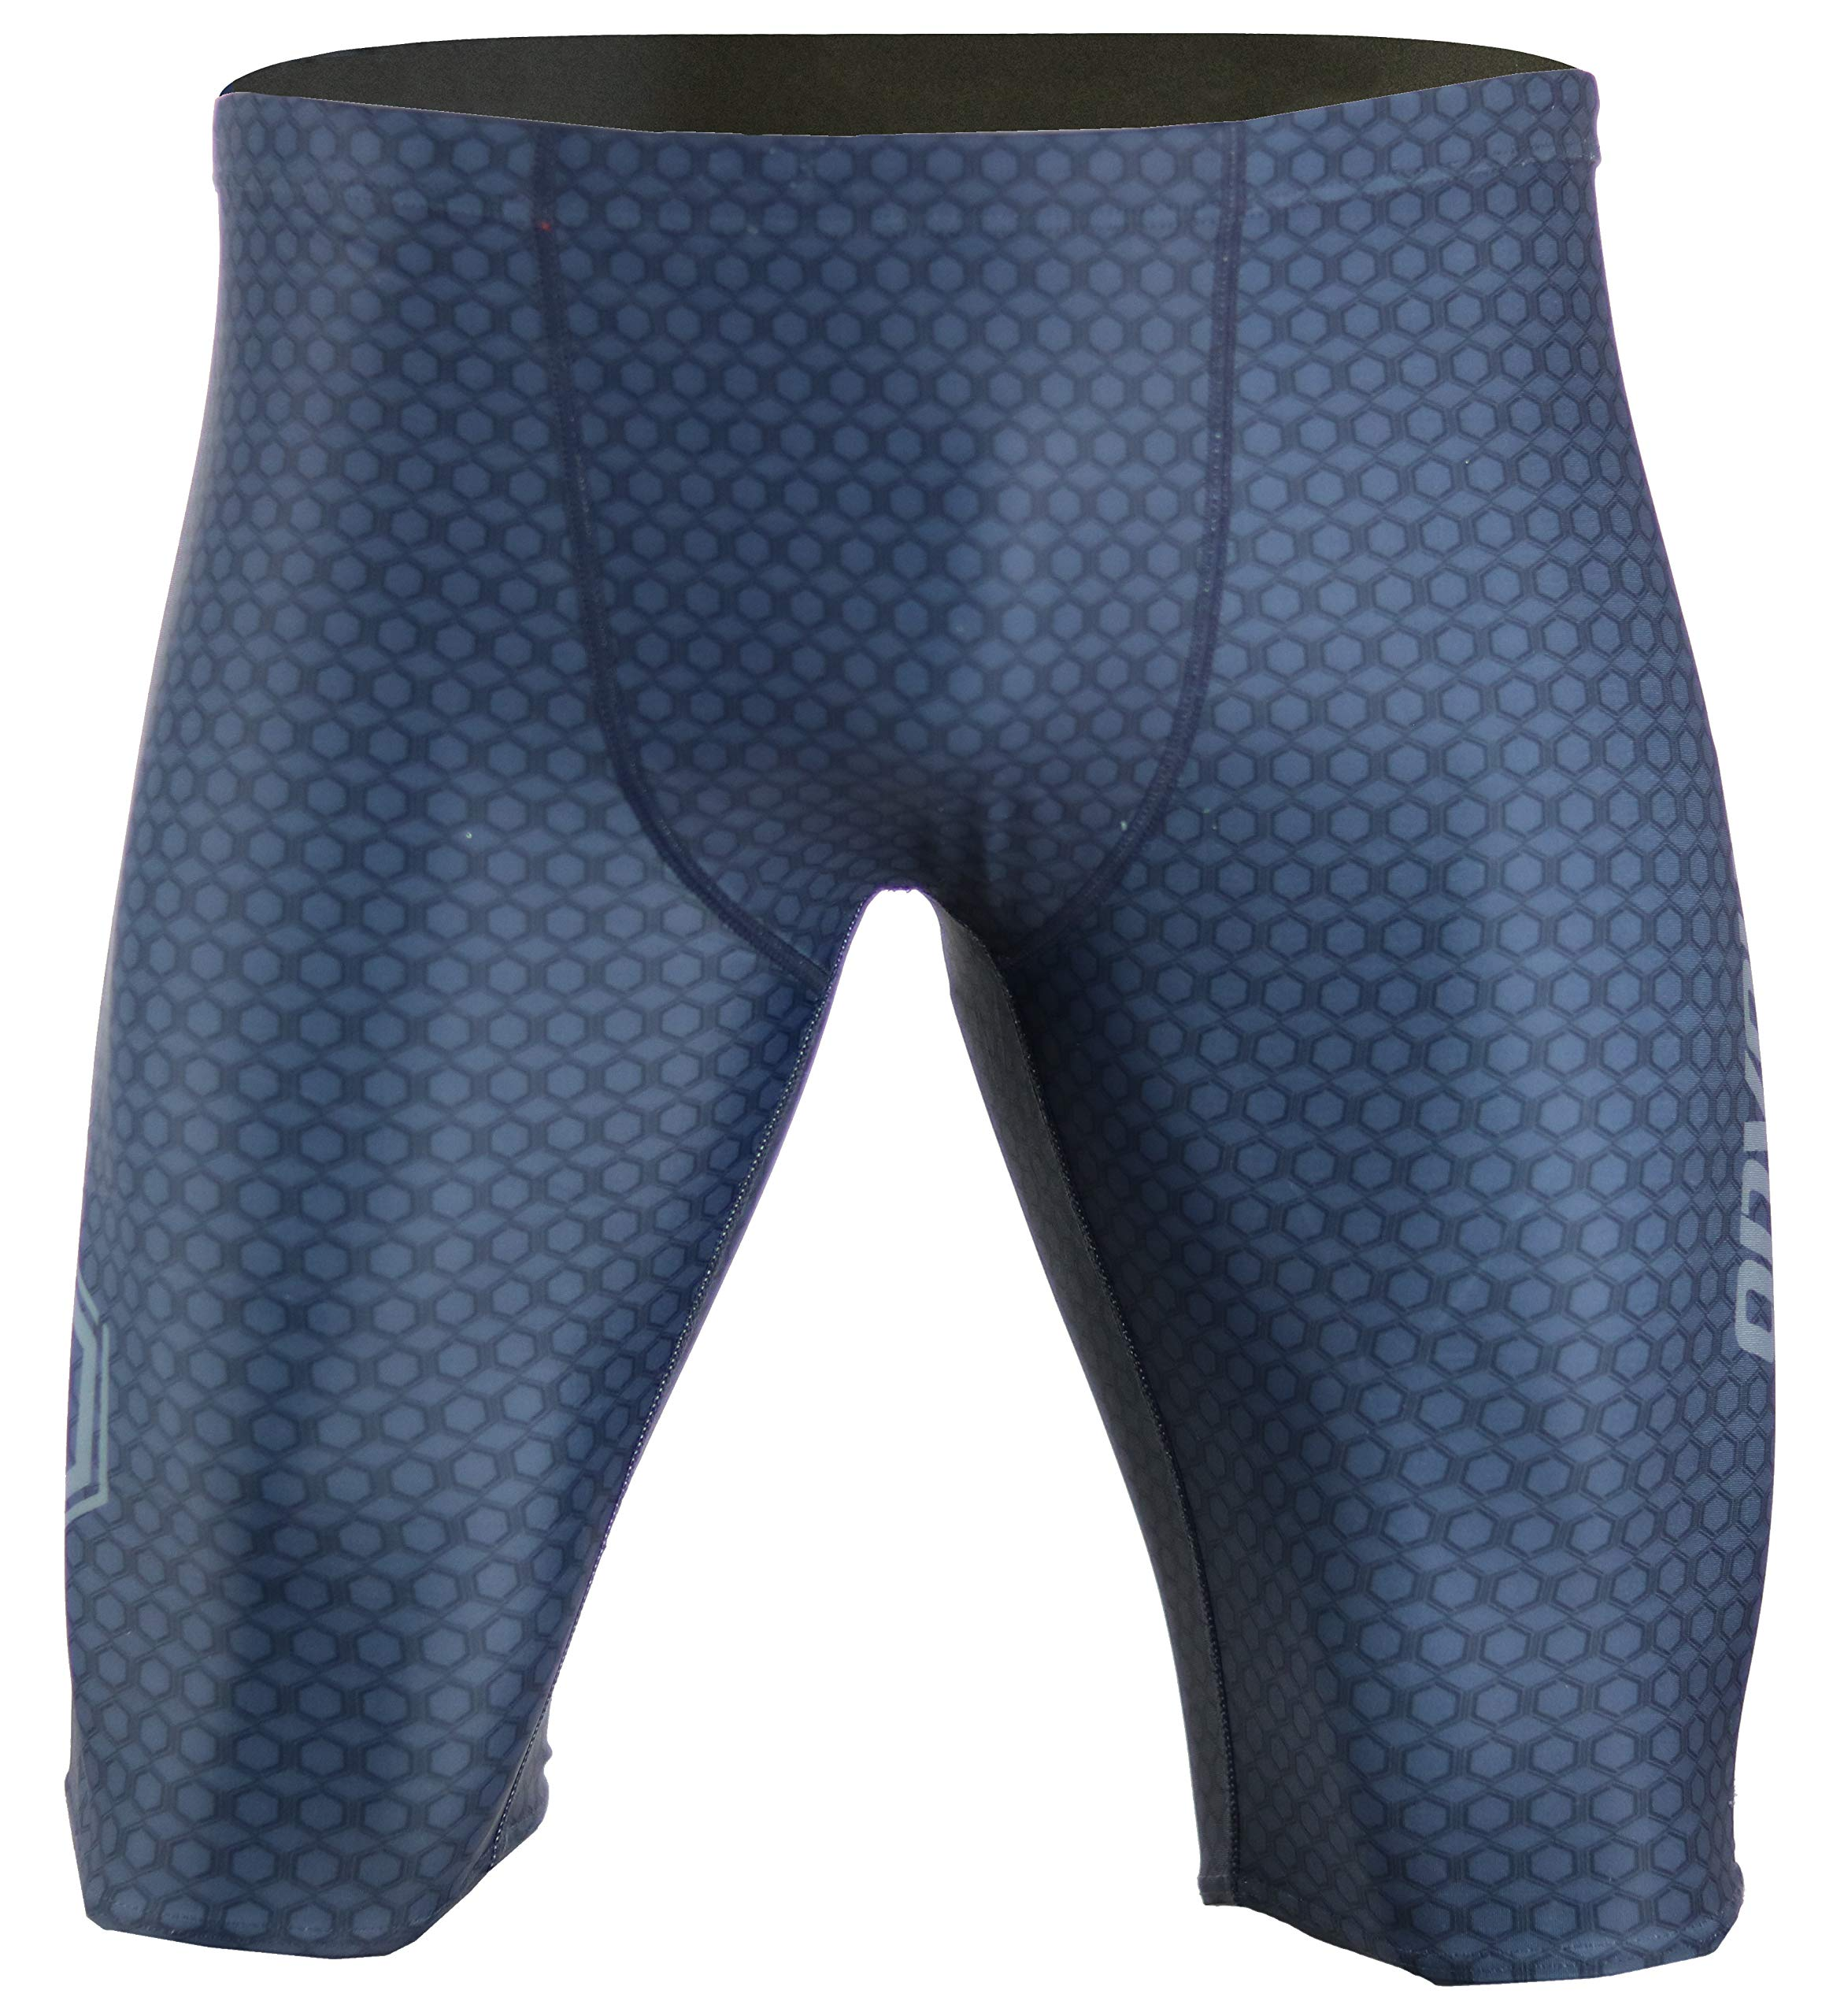 Onvous Mens V2 Compression Racing Swimsuit & Cross-Training Jammer/Shorts(32) Grey by Onvous